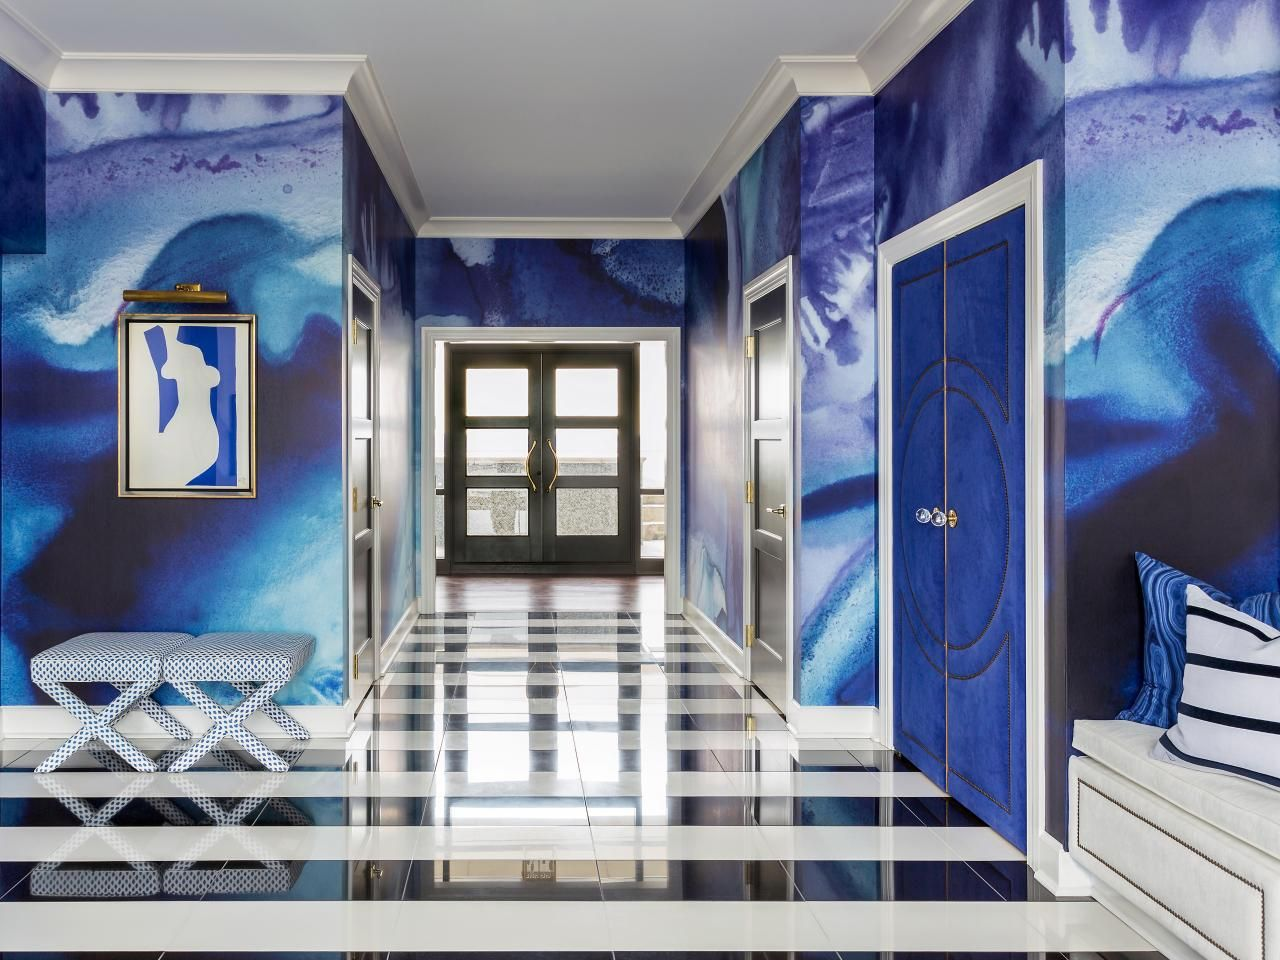 Entry Foyer Wallpaper : The dramatic blue wallpaper in this modern foyer turns whole